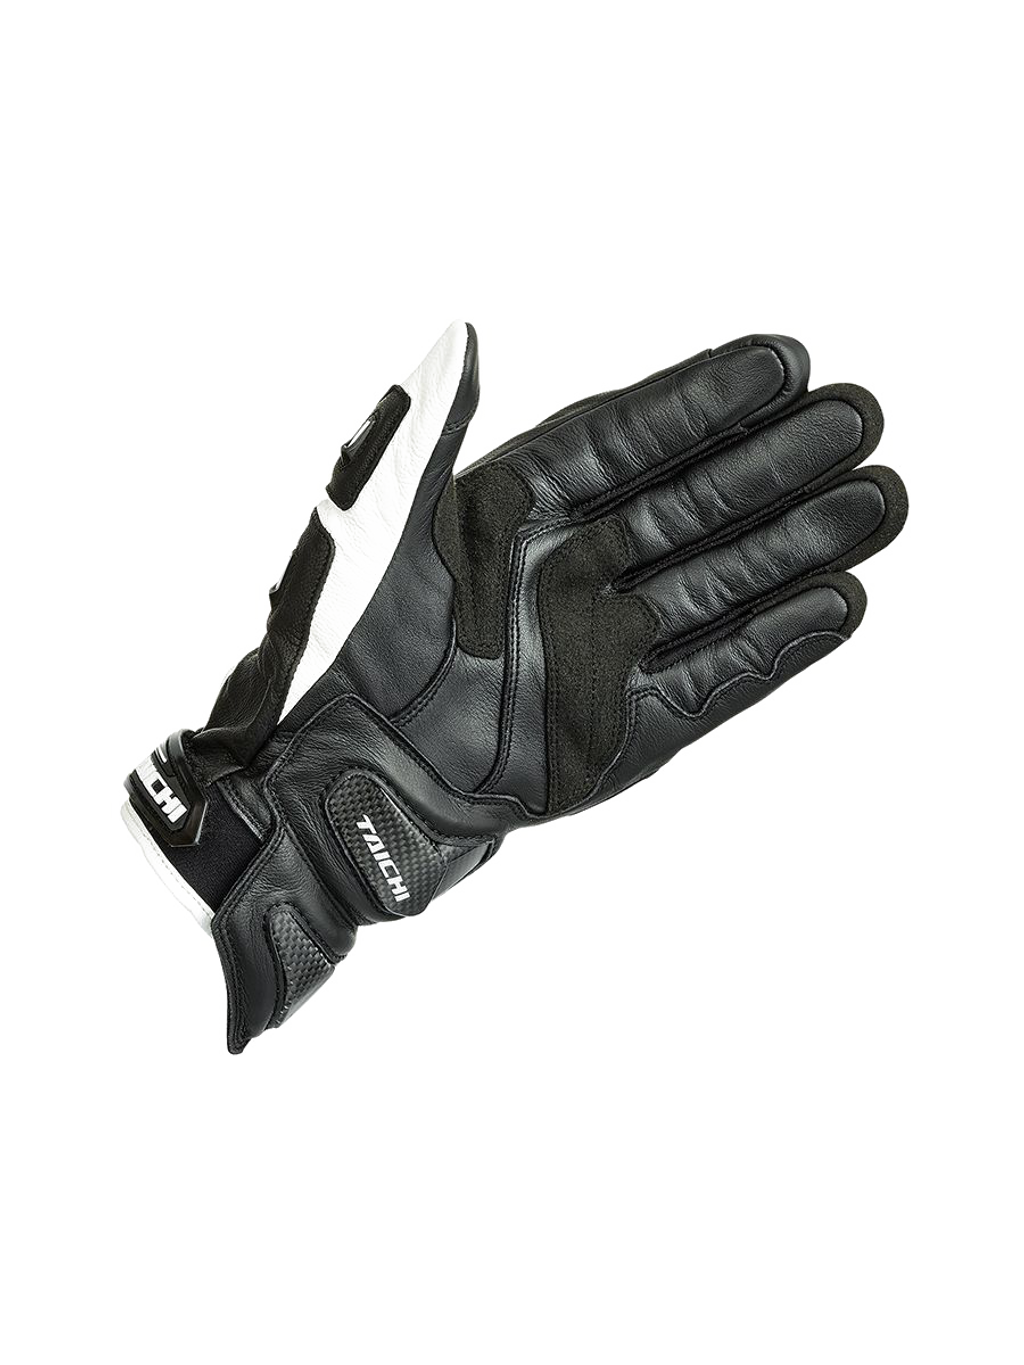 18 RS TAICHI RST441 RAPTOR LEATHER GLOVE white black (2).png